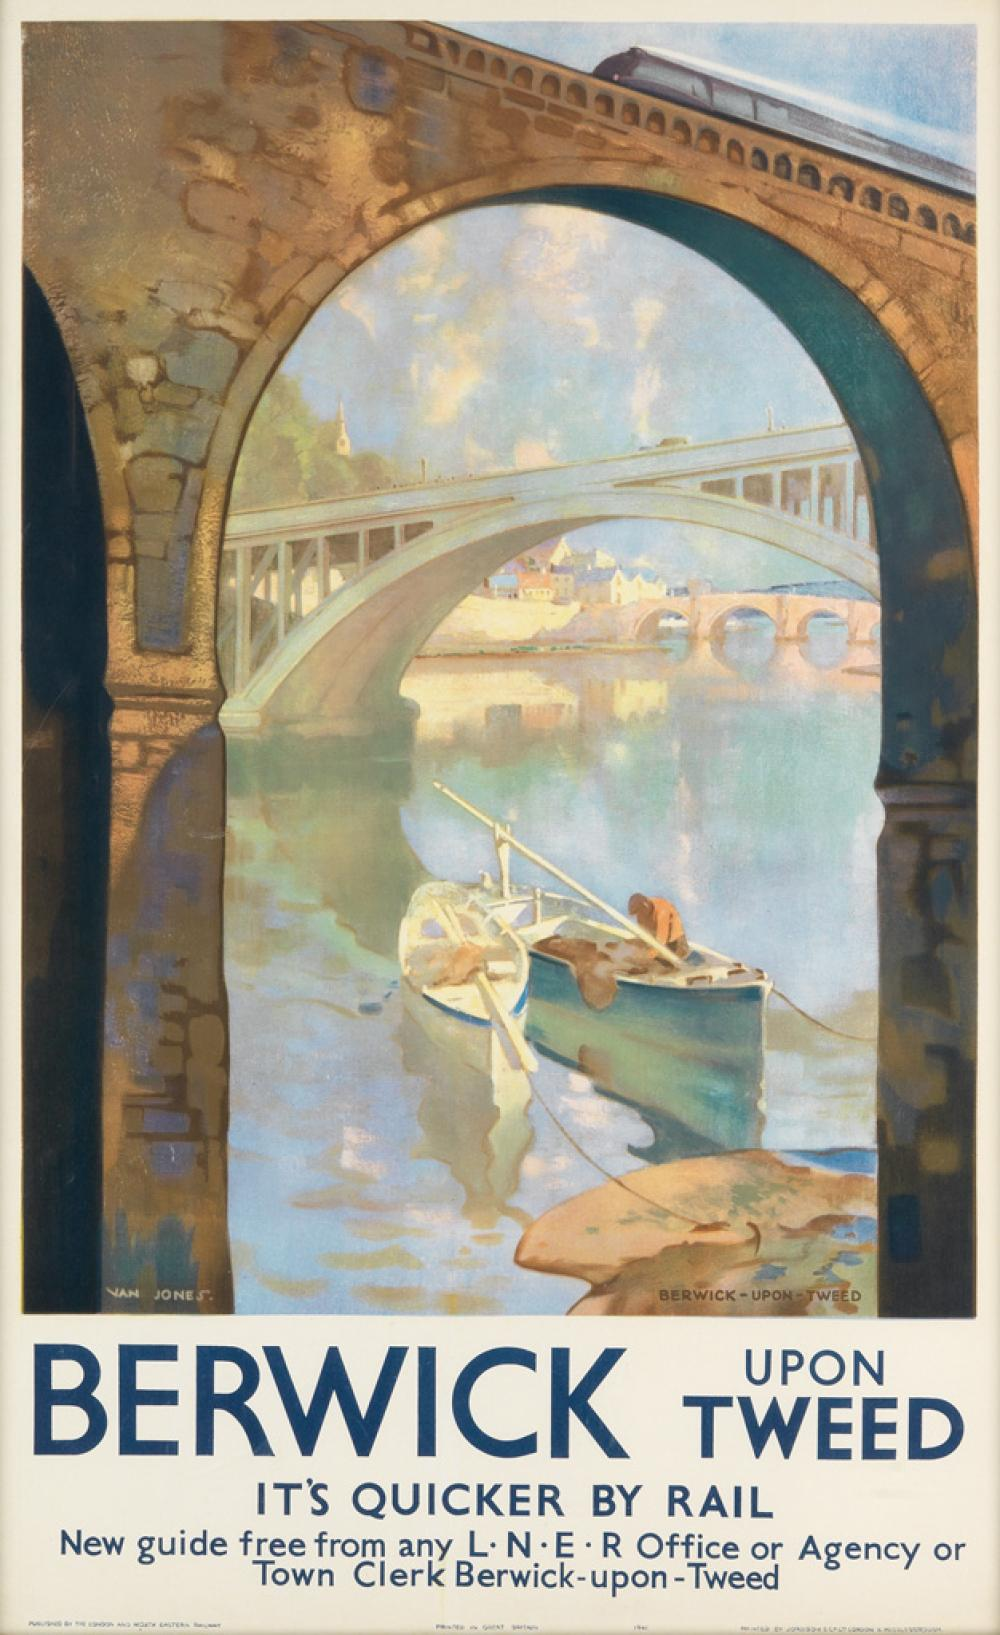 VAN JONES (DATES UNKNOWN). BERWICK UPON TWEED. 1941. 39x24 inches, 100x63 cm. Jordison & Co, Ltd., London.